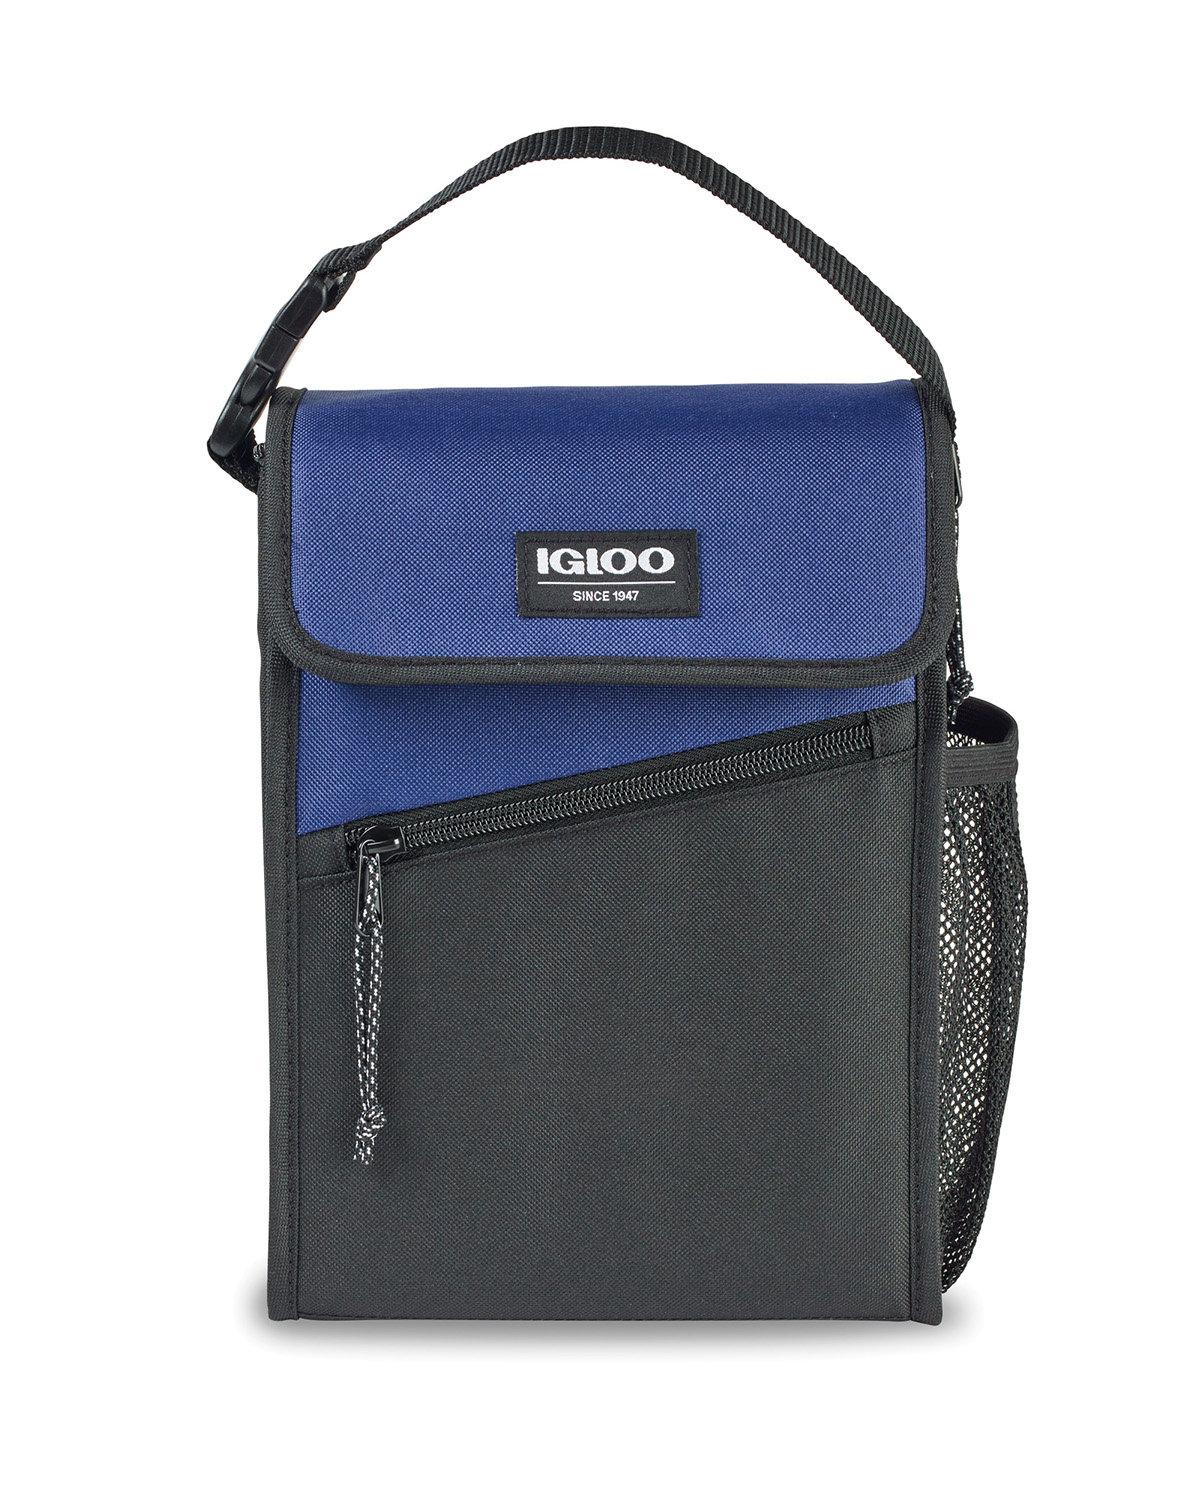 Igloo Avalanche Lunch Cooler NEW NAVY